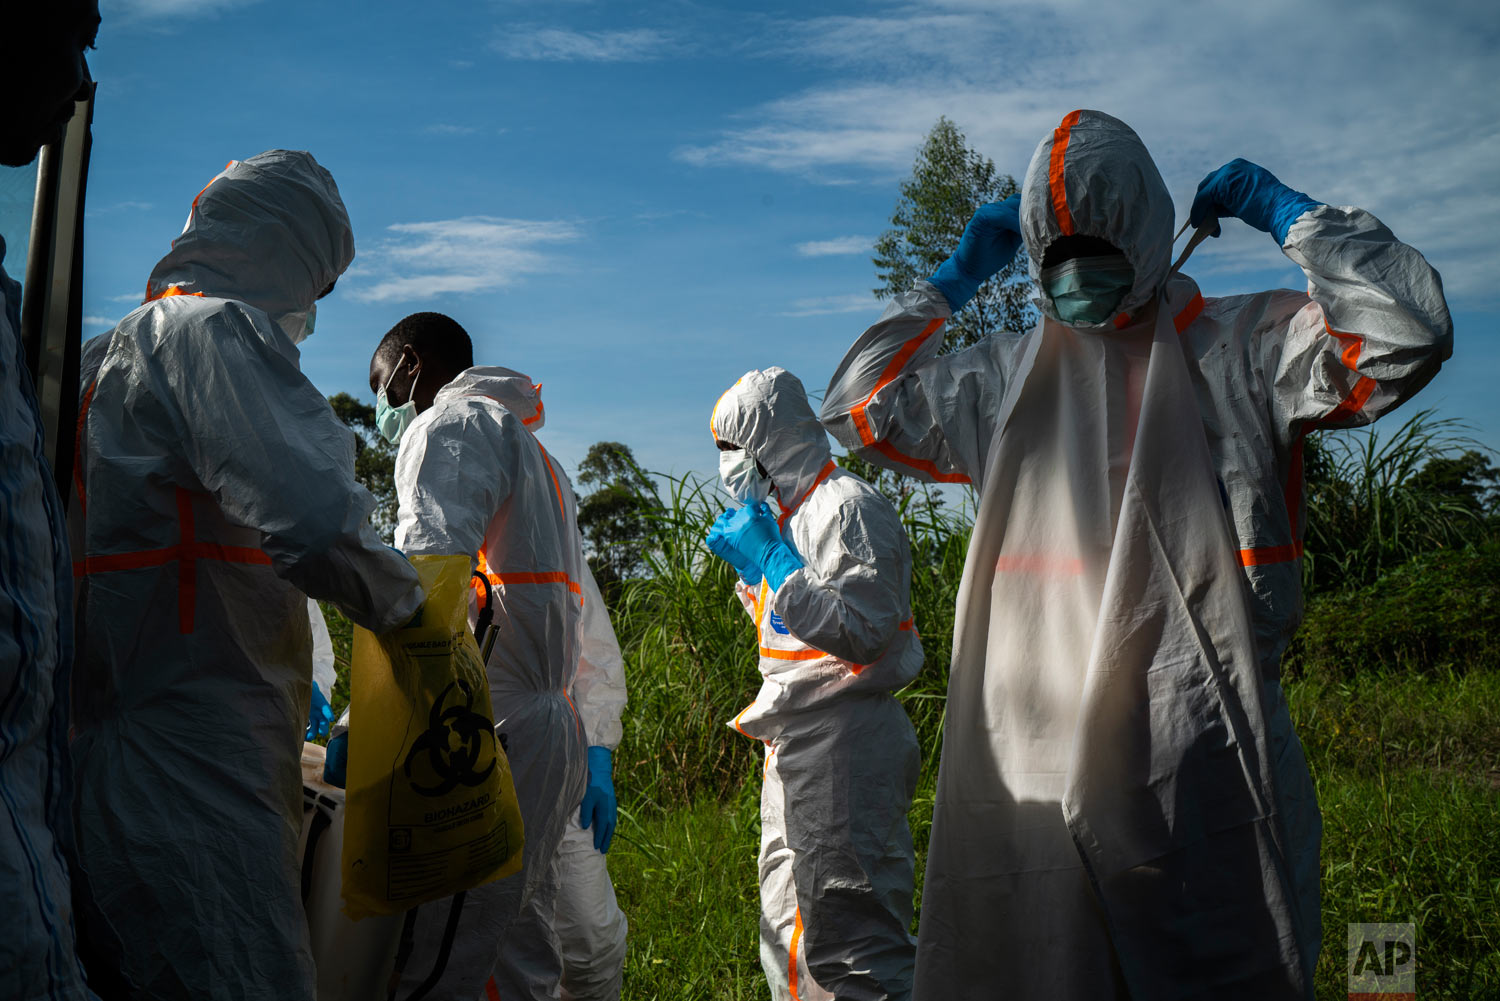 Burial workers put on their protective gear before carrying the remains of Mussa Kathembo, an Islamic scholar who had prayed over those who were sick, and his wife Asiya to their final resting place in Beni, Congo, July 14, 2019. Both died of Ebola. (AP Photo/Jerome Delay)